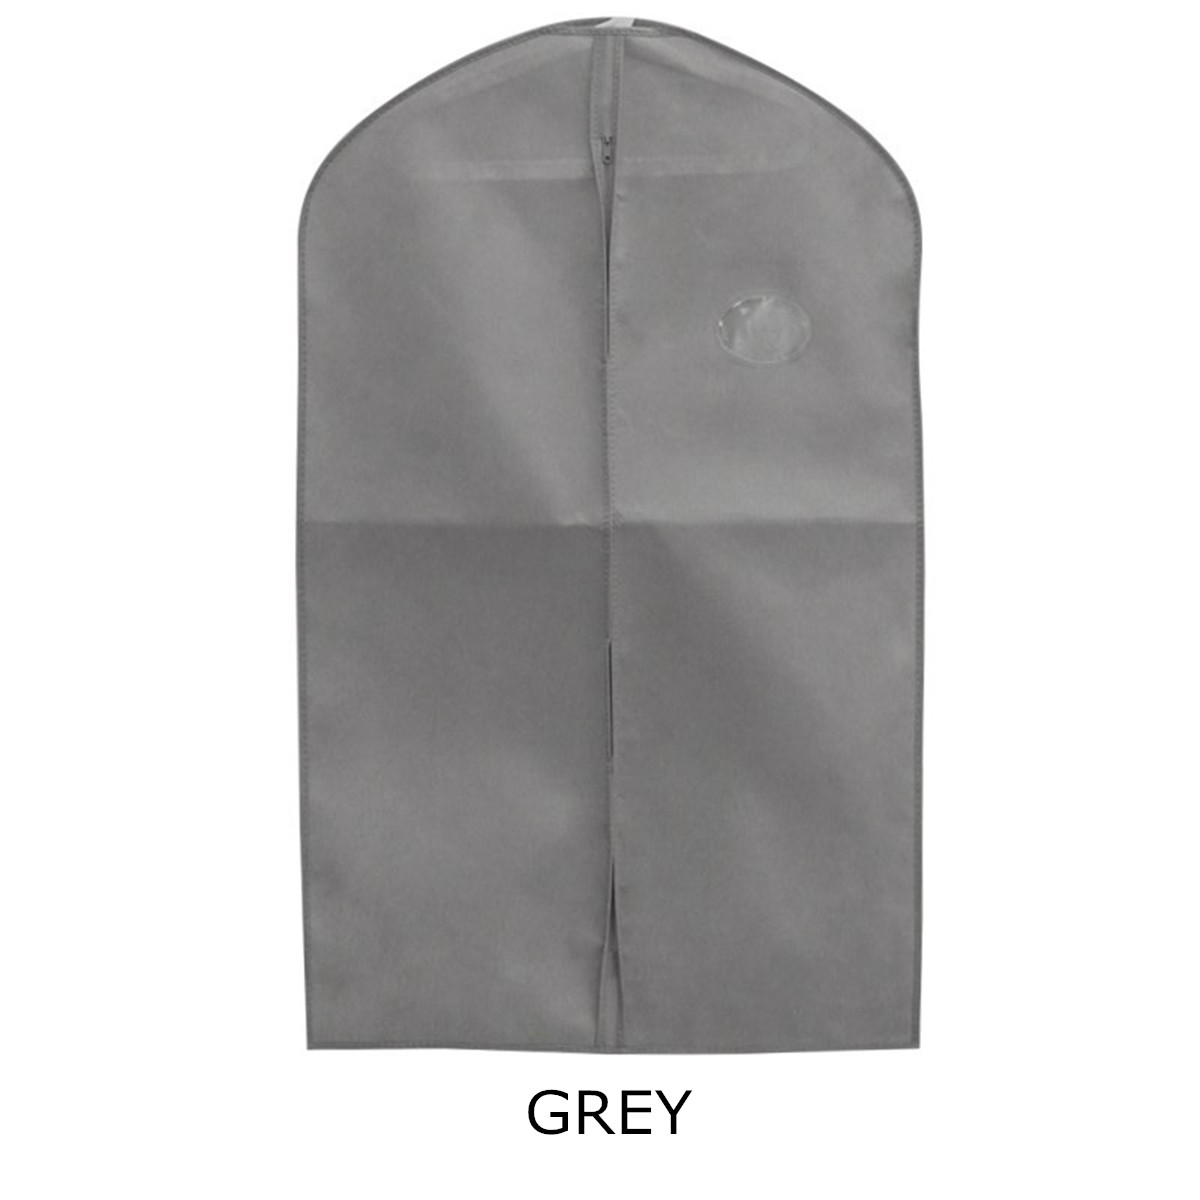 Non-Woven Breathable Garment Clothes Cover Dress Suit Coat Protector Storage Bag Travel Dustproof Bag Protective Cover Organizer garment bag